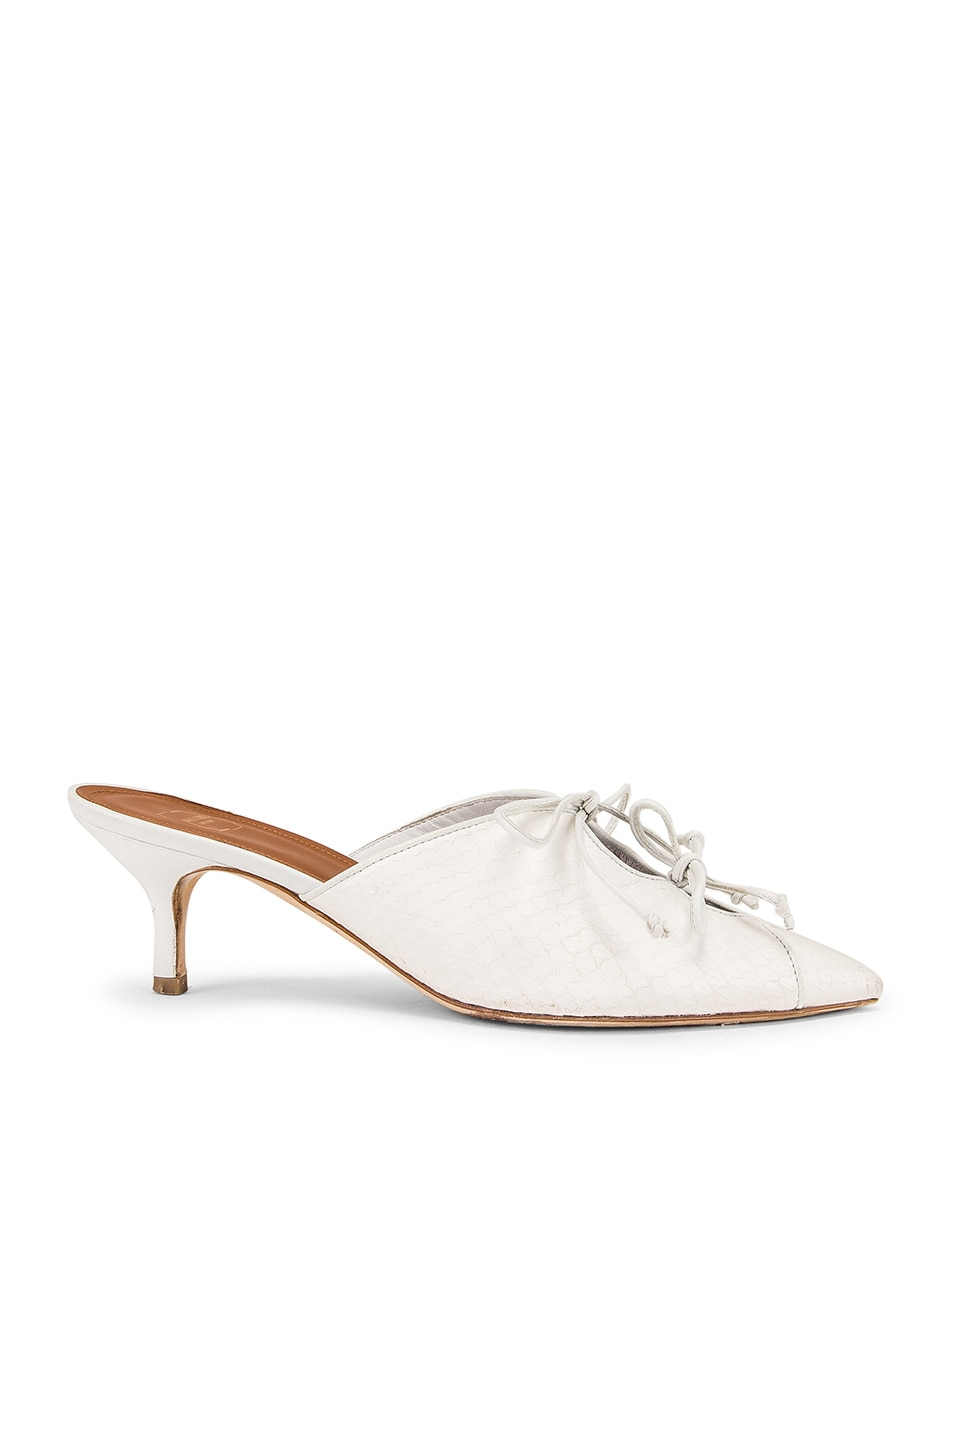 Image 1 of Malone Souliers Victoria MS 45 Heel in White